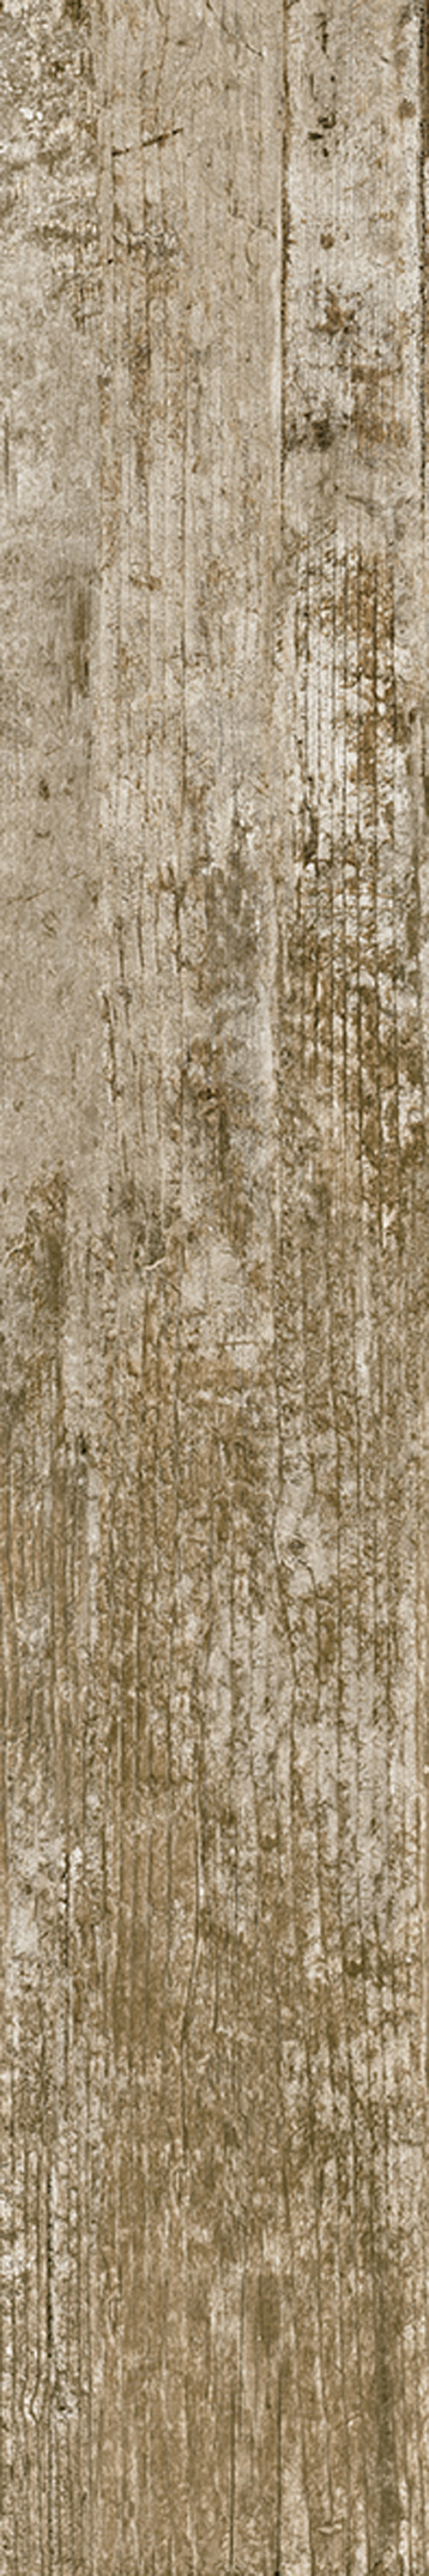 ECO HOME BEIGE TIMBER MATT 200X1200 Image